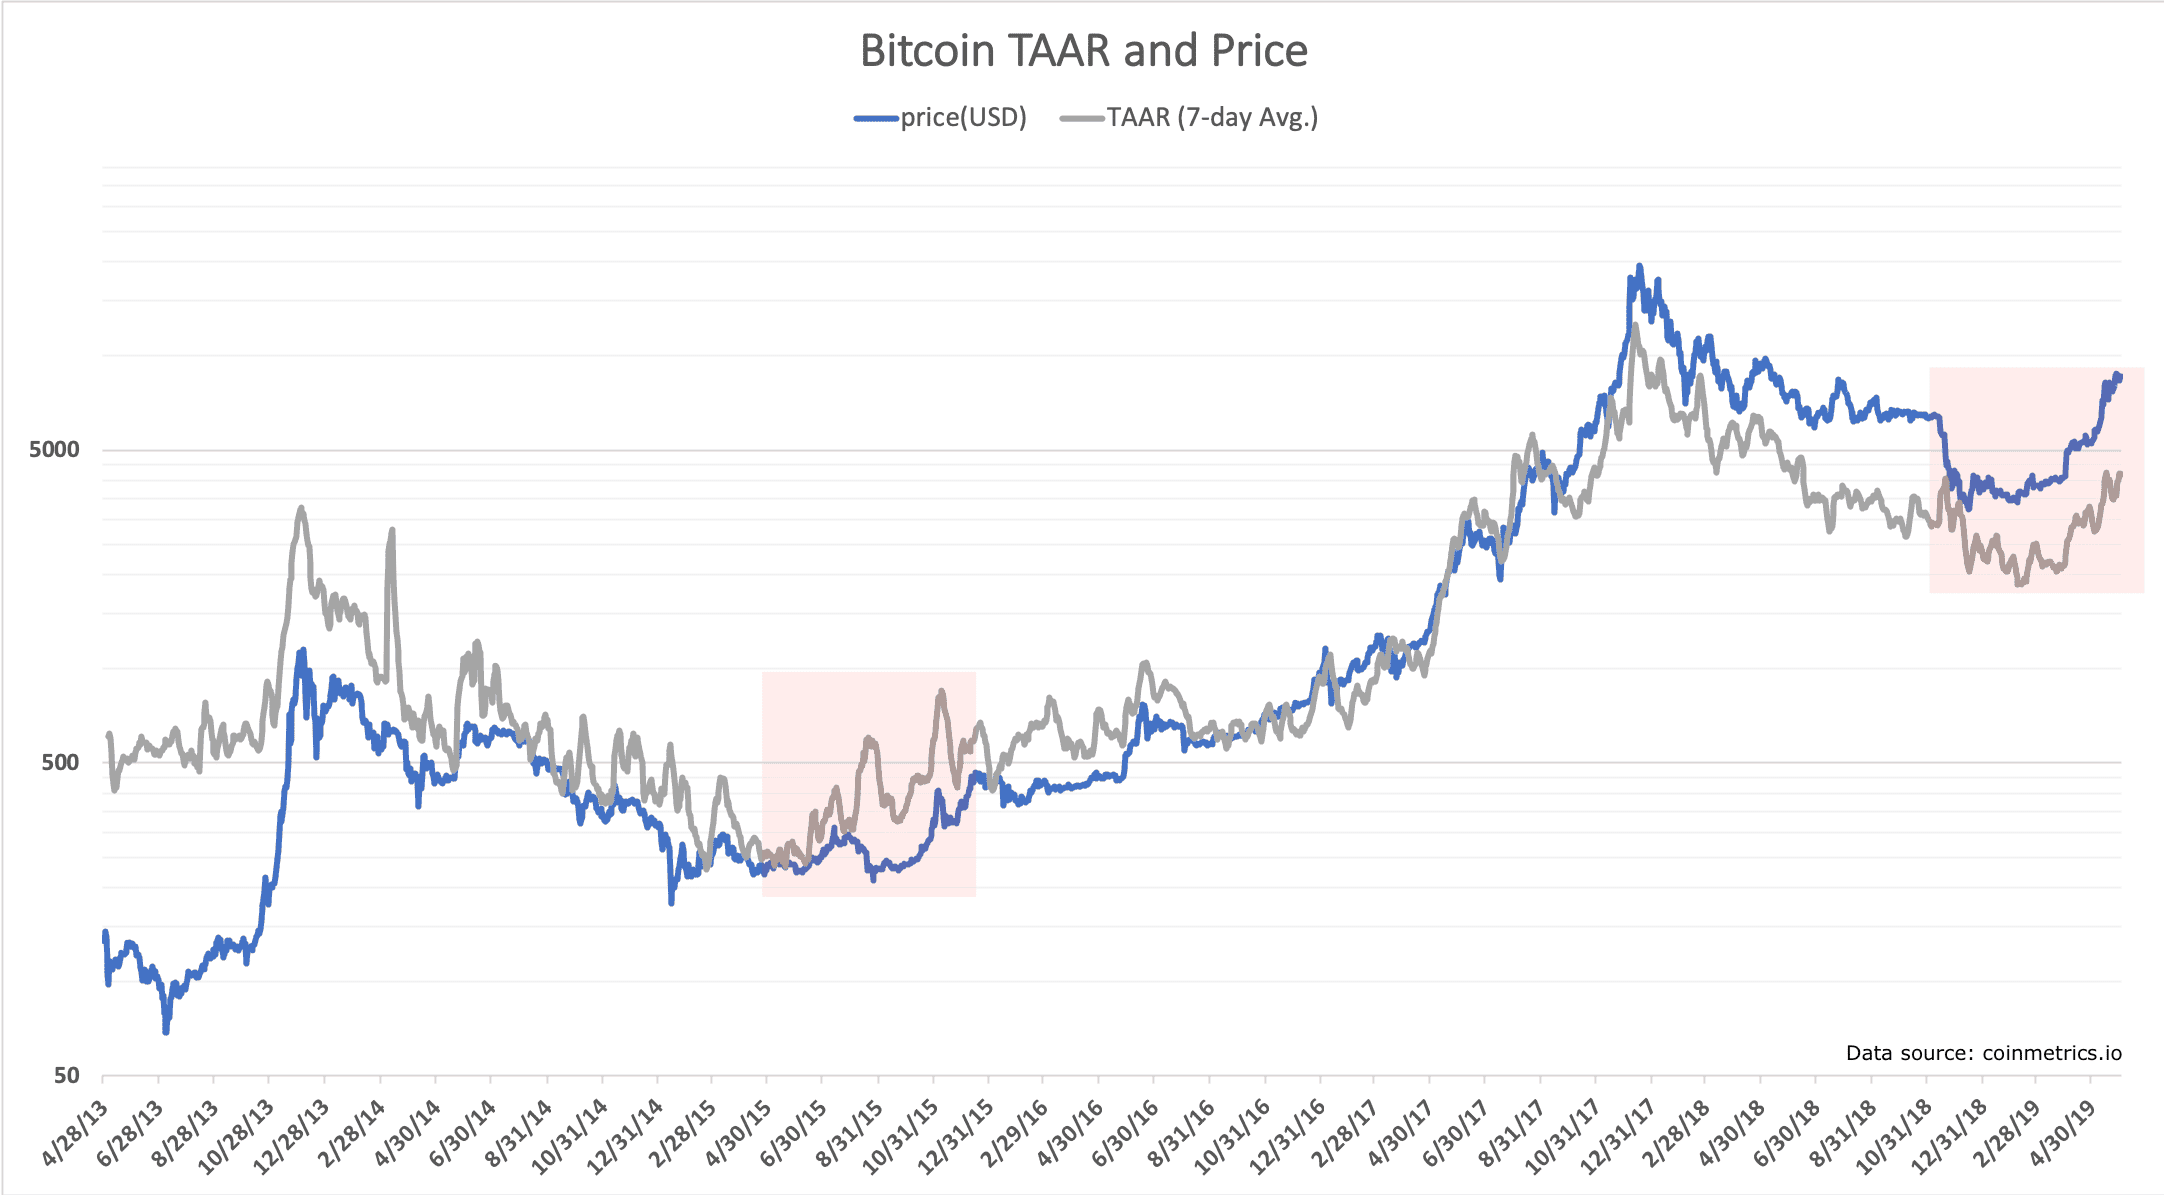 Bitcoins 2019 Price Run Driven By Real Transaction Growth Analysis - Bitcoin's 2019 Price Run Driven By Real Transaction Growth, Analysis Shows